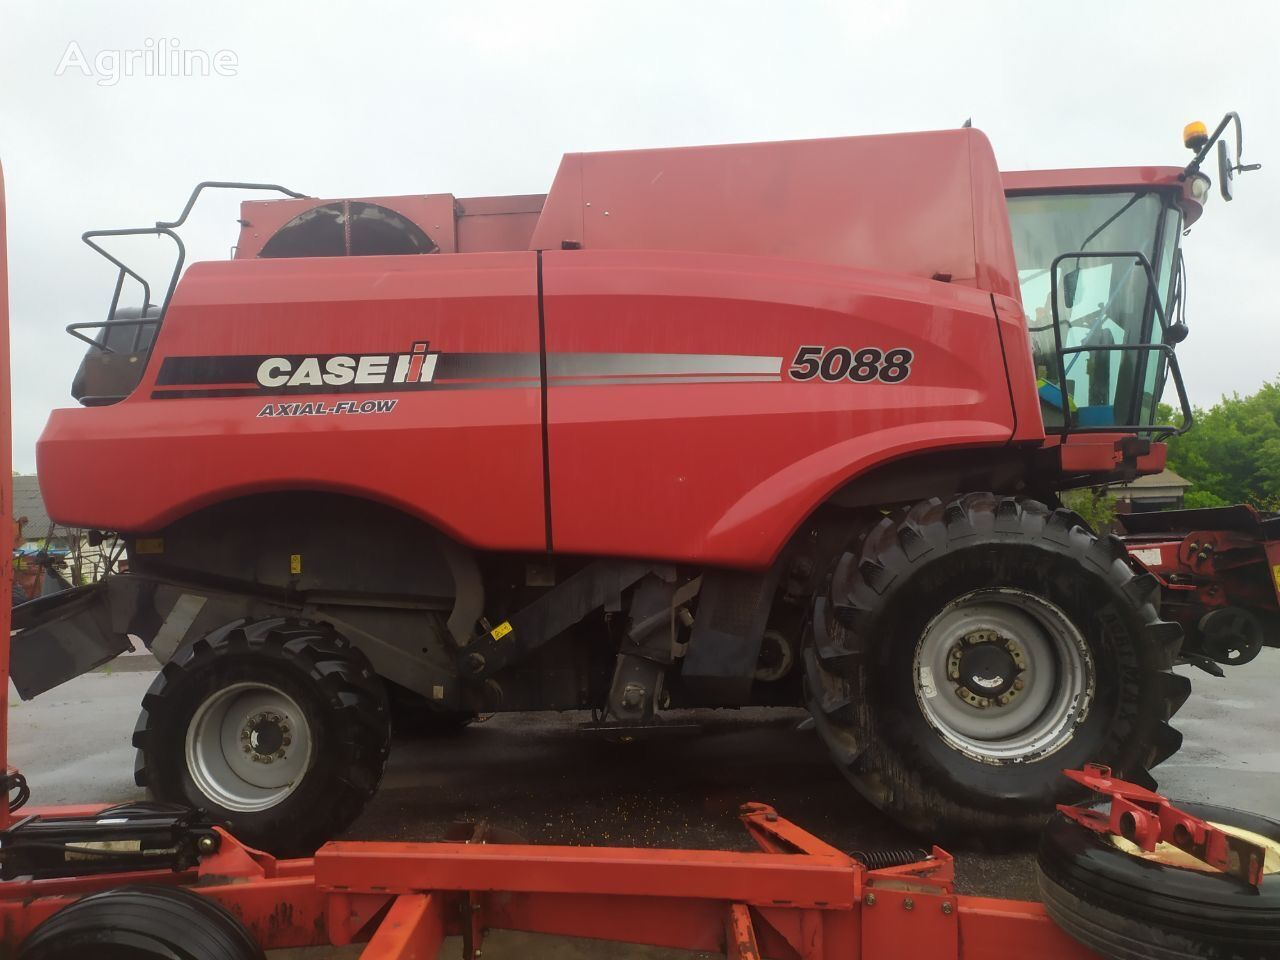 CASE IH Axial-Flow 5088 grain harvester